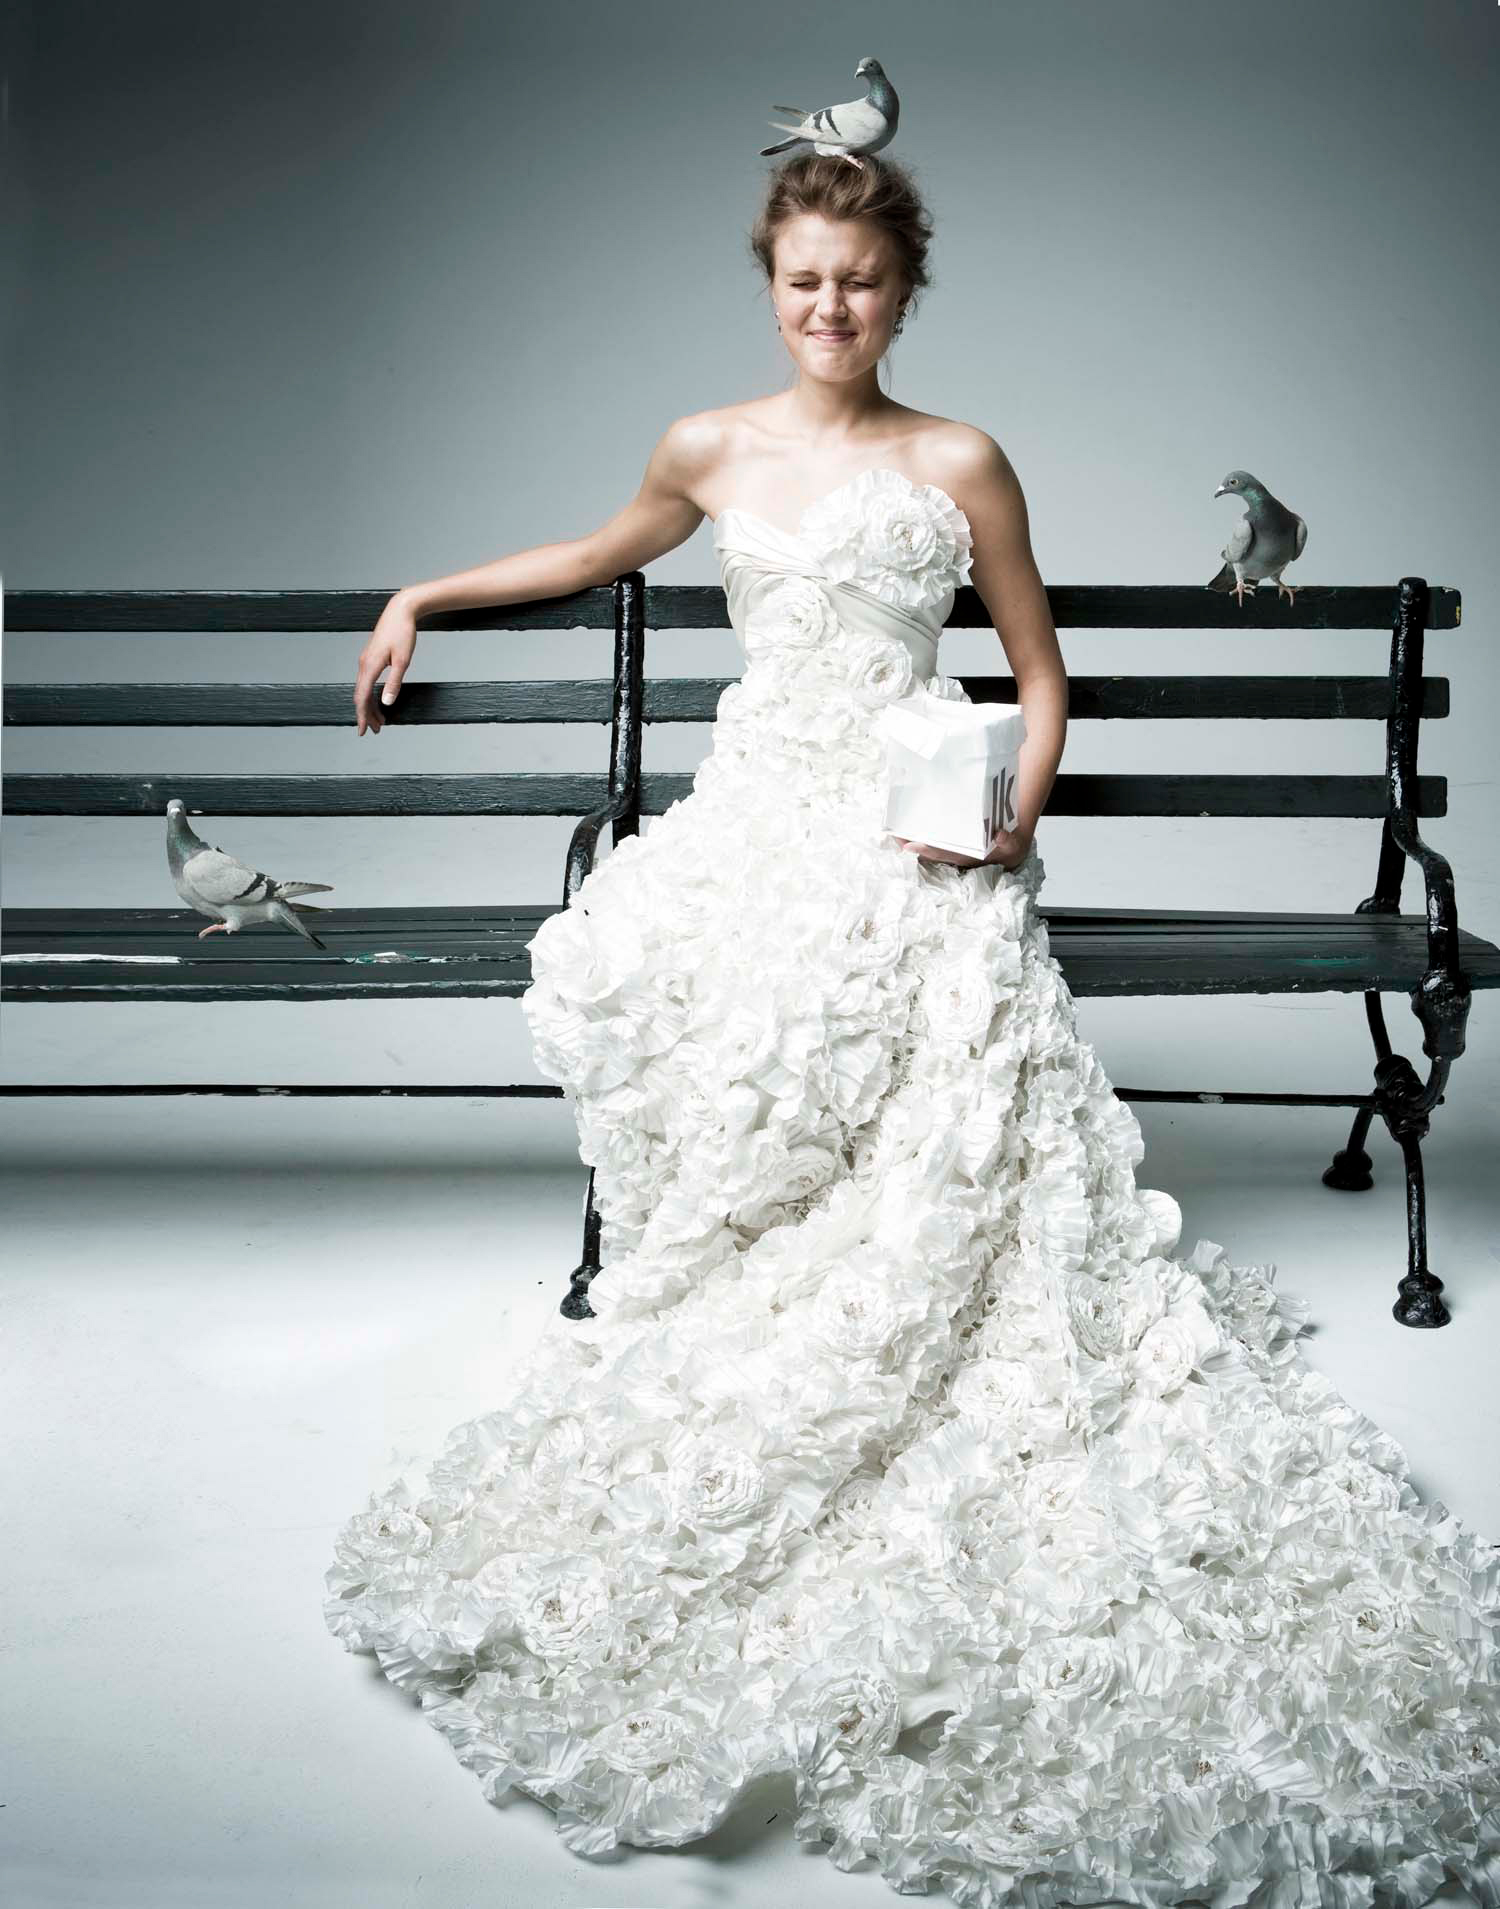 nymag-bridal-layout3-2.jpg